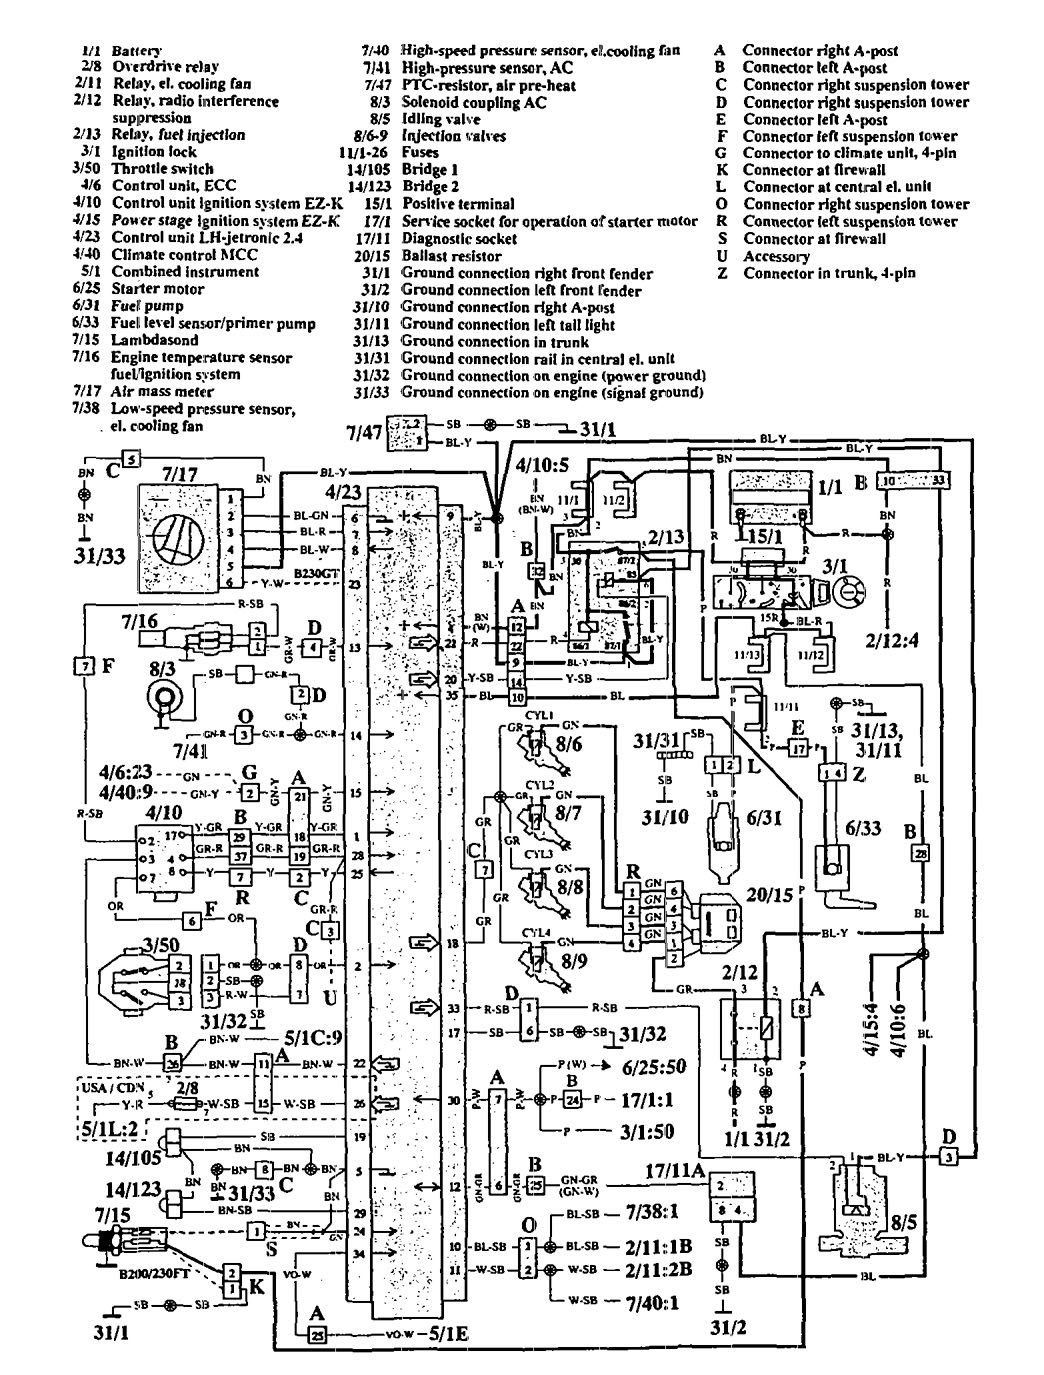 Volvo 940 Fuel Pump Wiring Diagram Download Diagrams 1993 Jeep Grand Cherokee Relay 740 Stereo